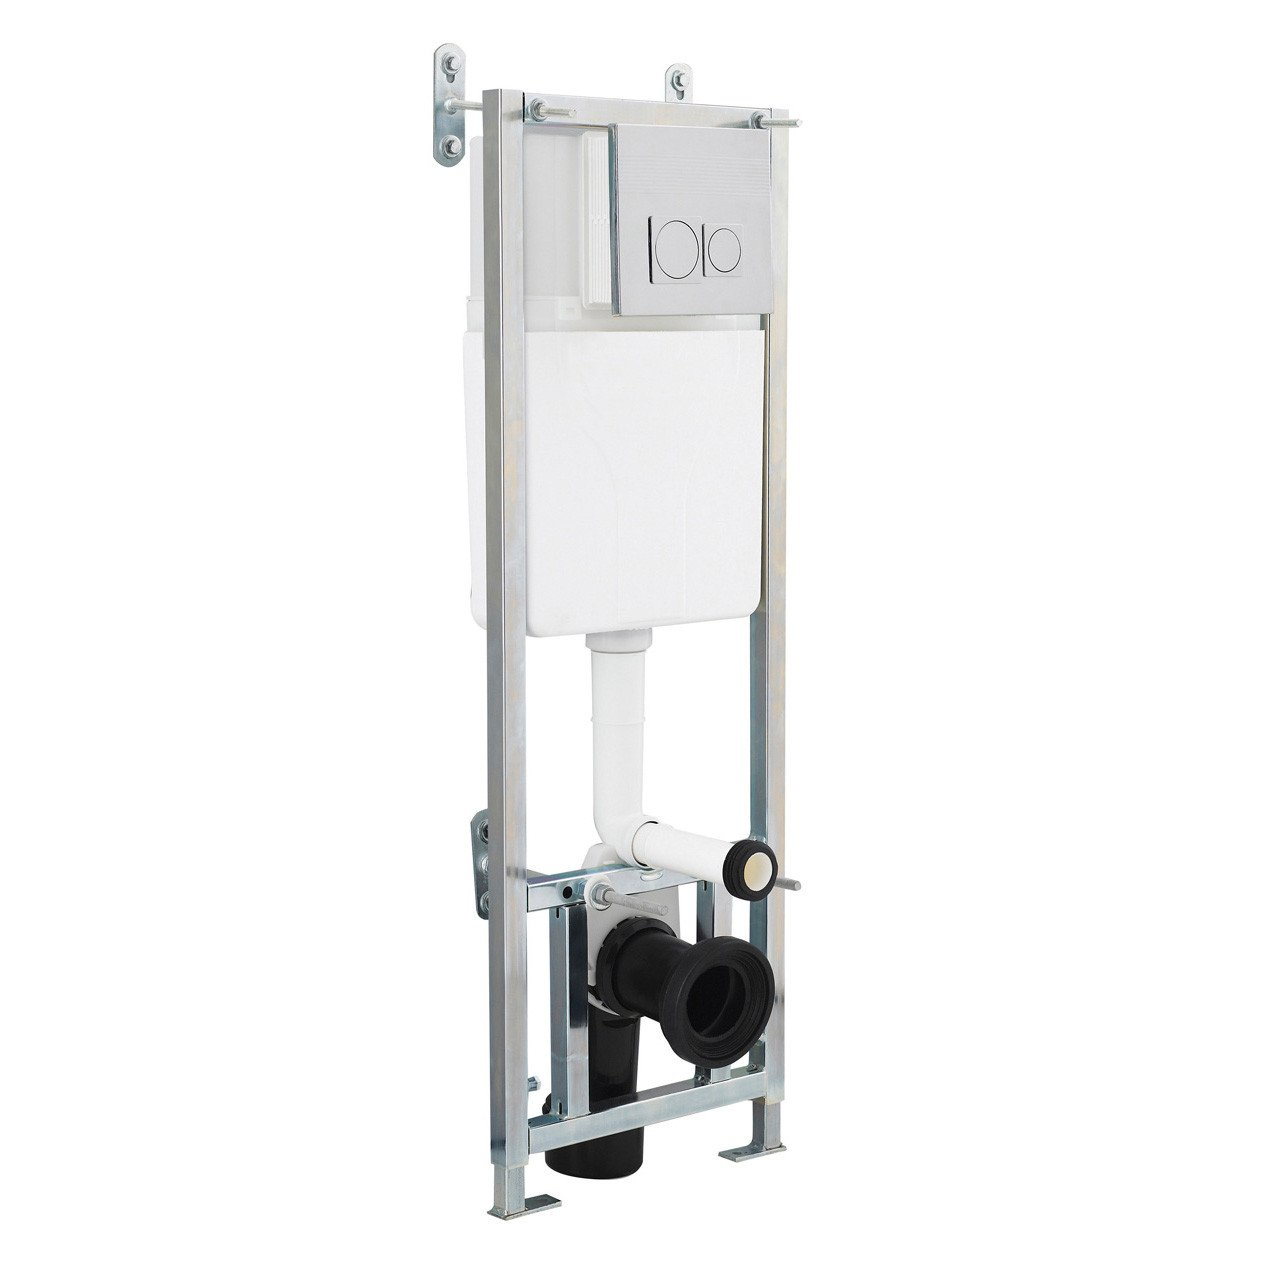 Premier C Cistern Wall Frame Complete with Chrome P Button - XTY005